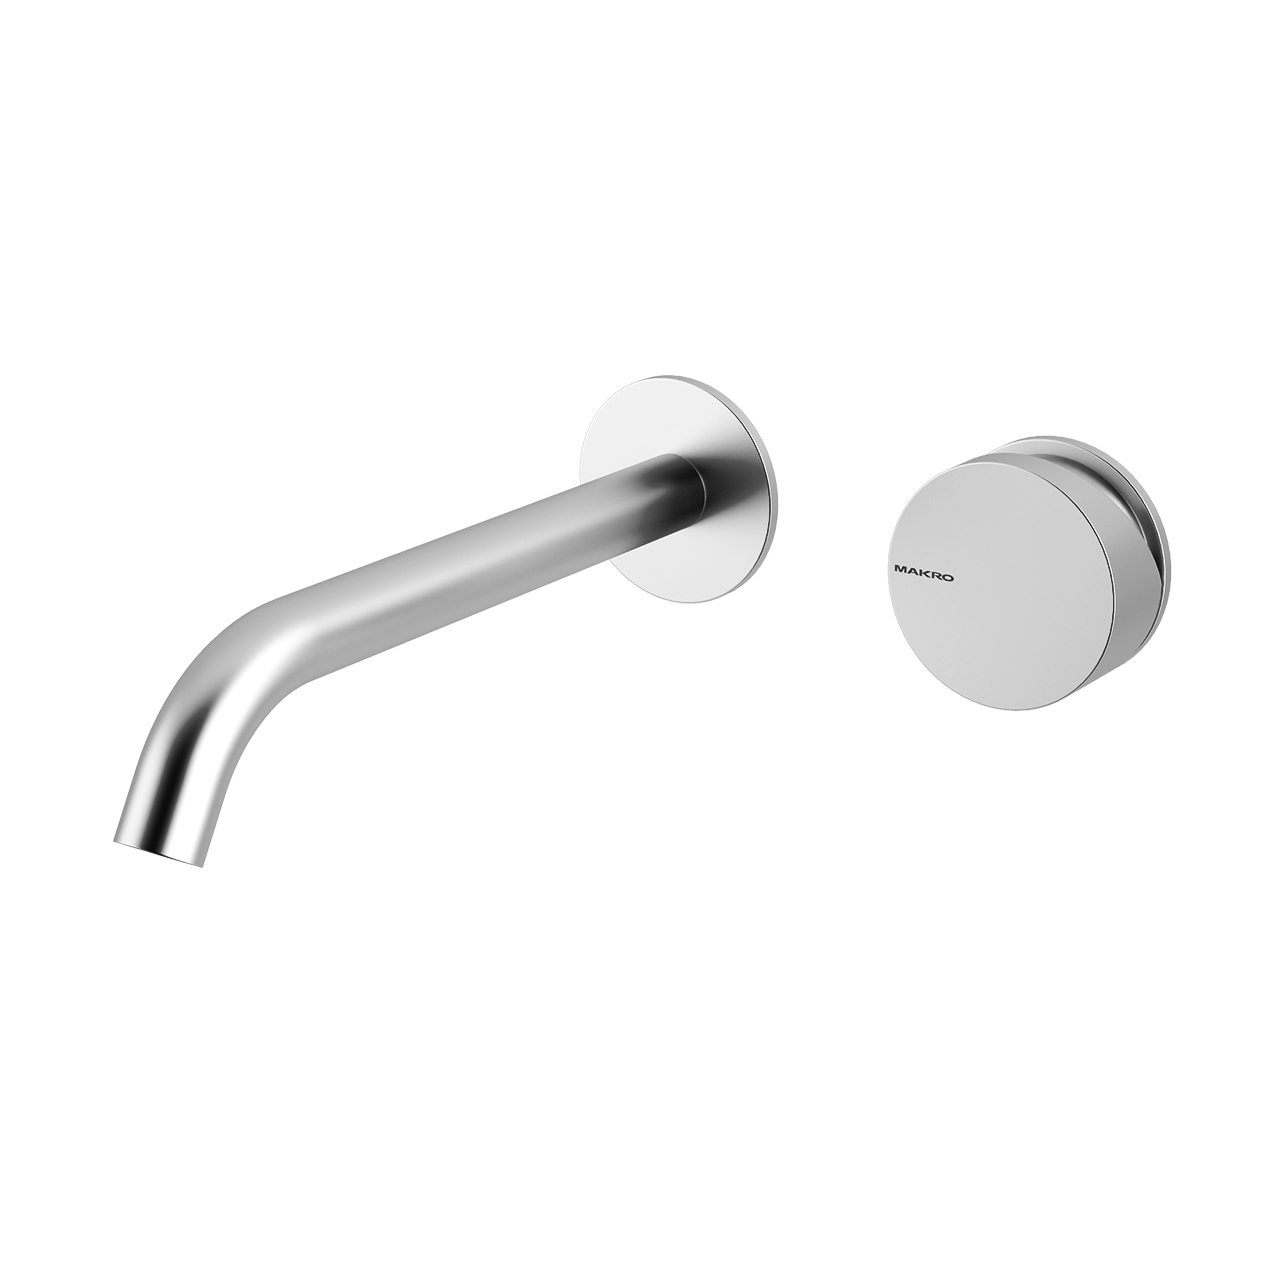 OX Wall Mixer Taps by Makro